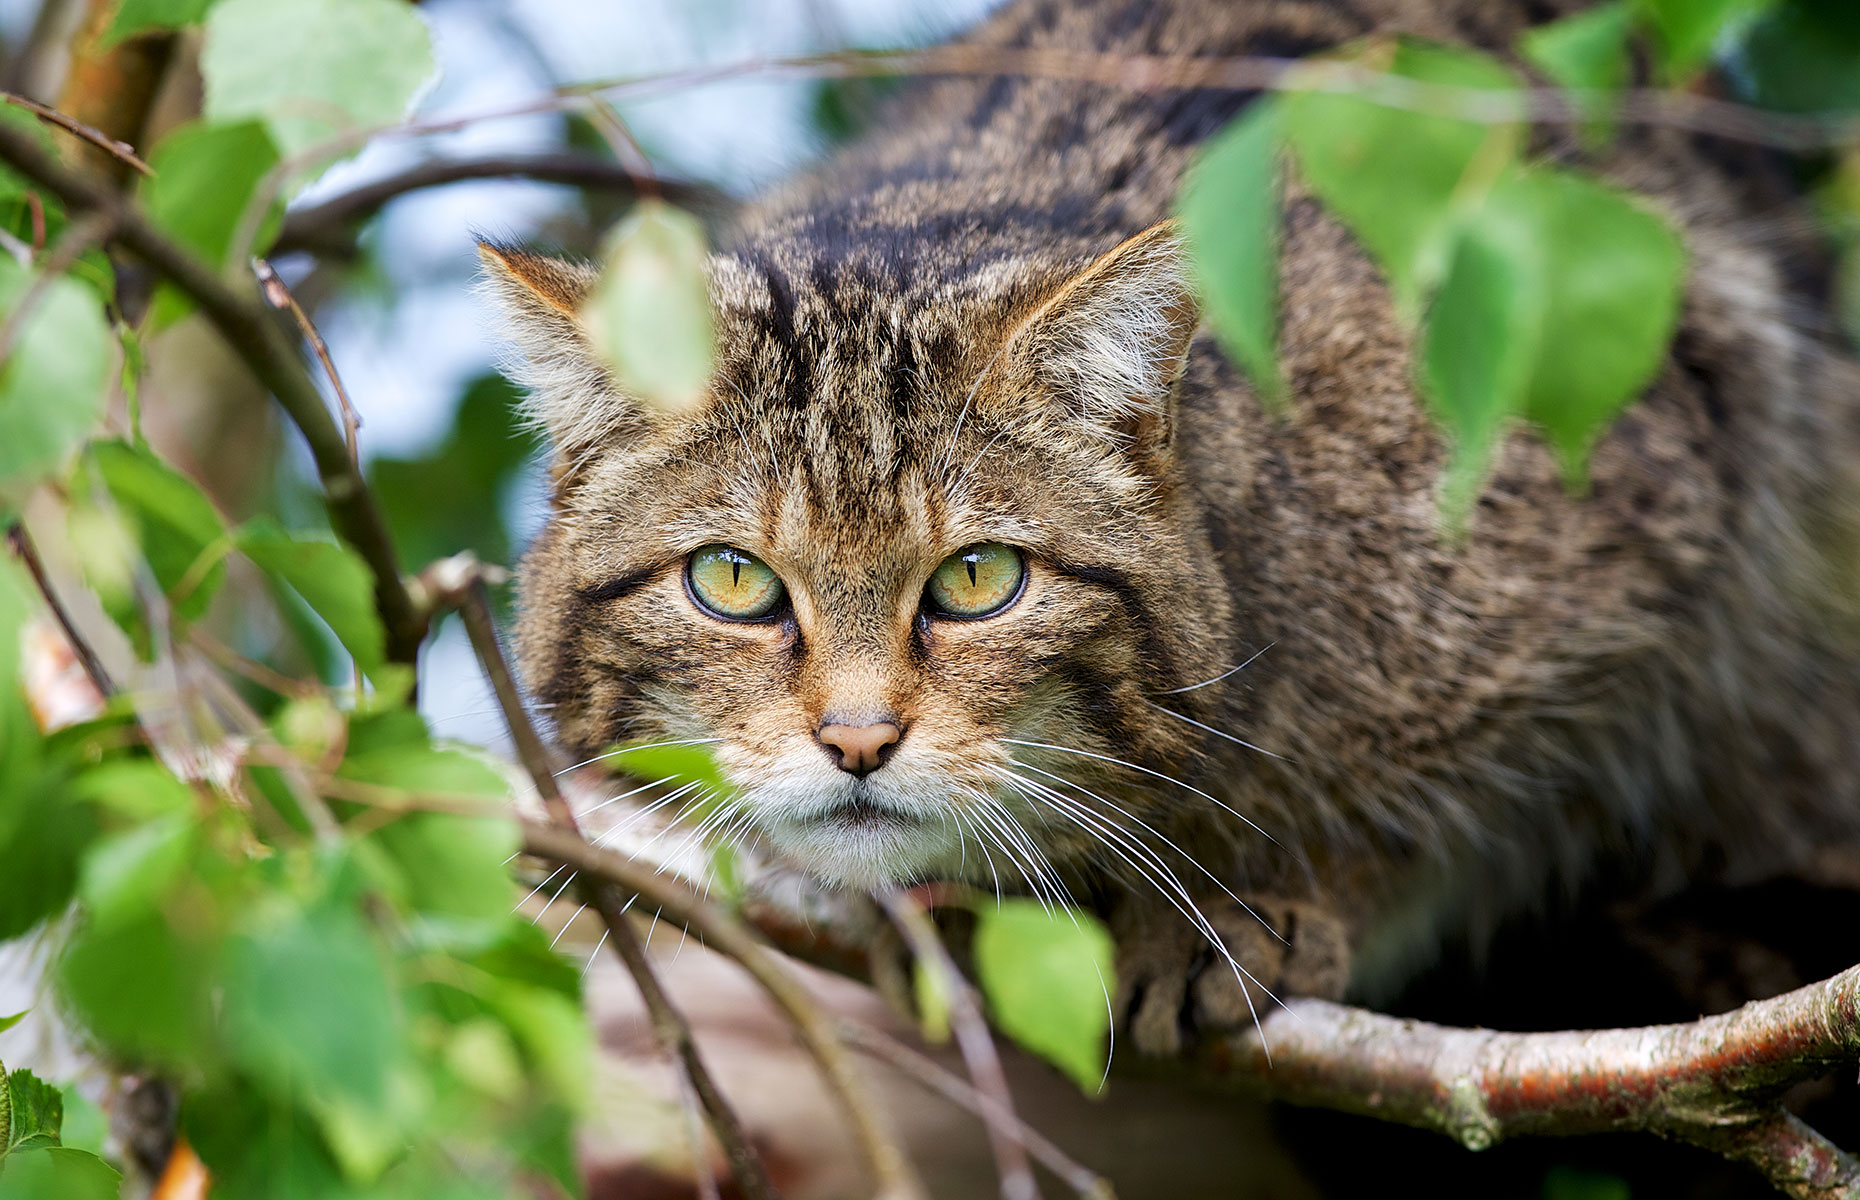 A Scottish wildcat, also known as a Highlands tiger (Image: Mark Bridger/Shutterstock))